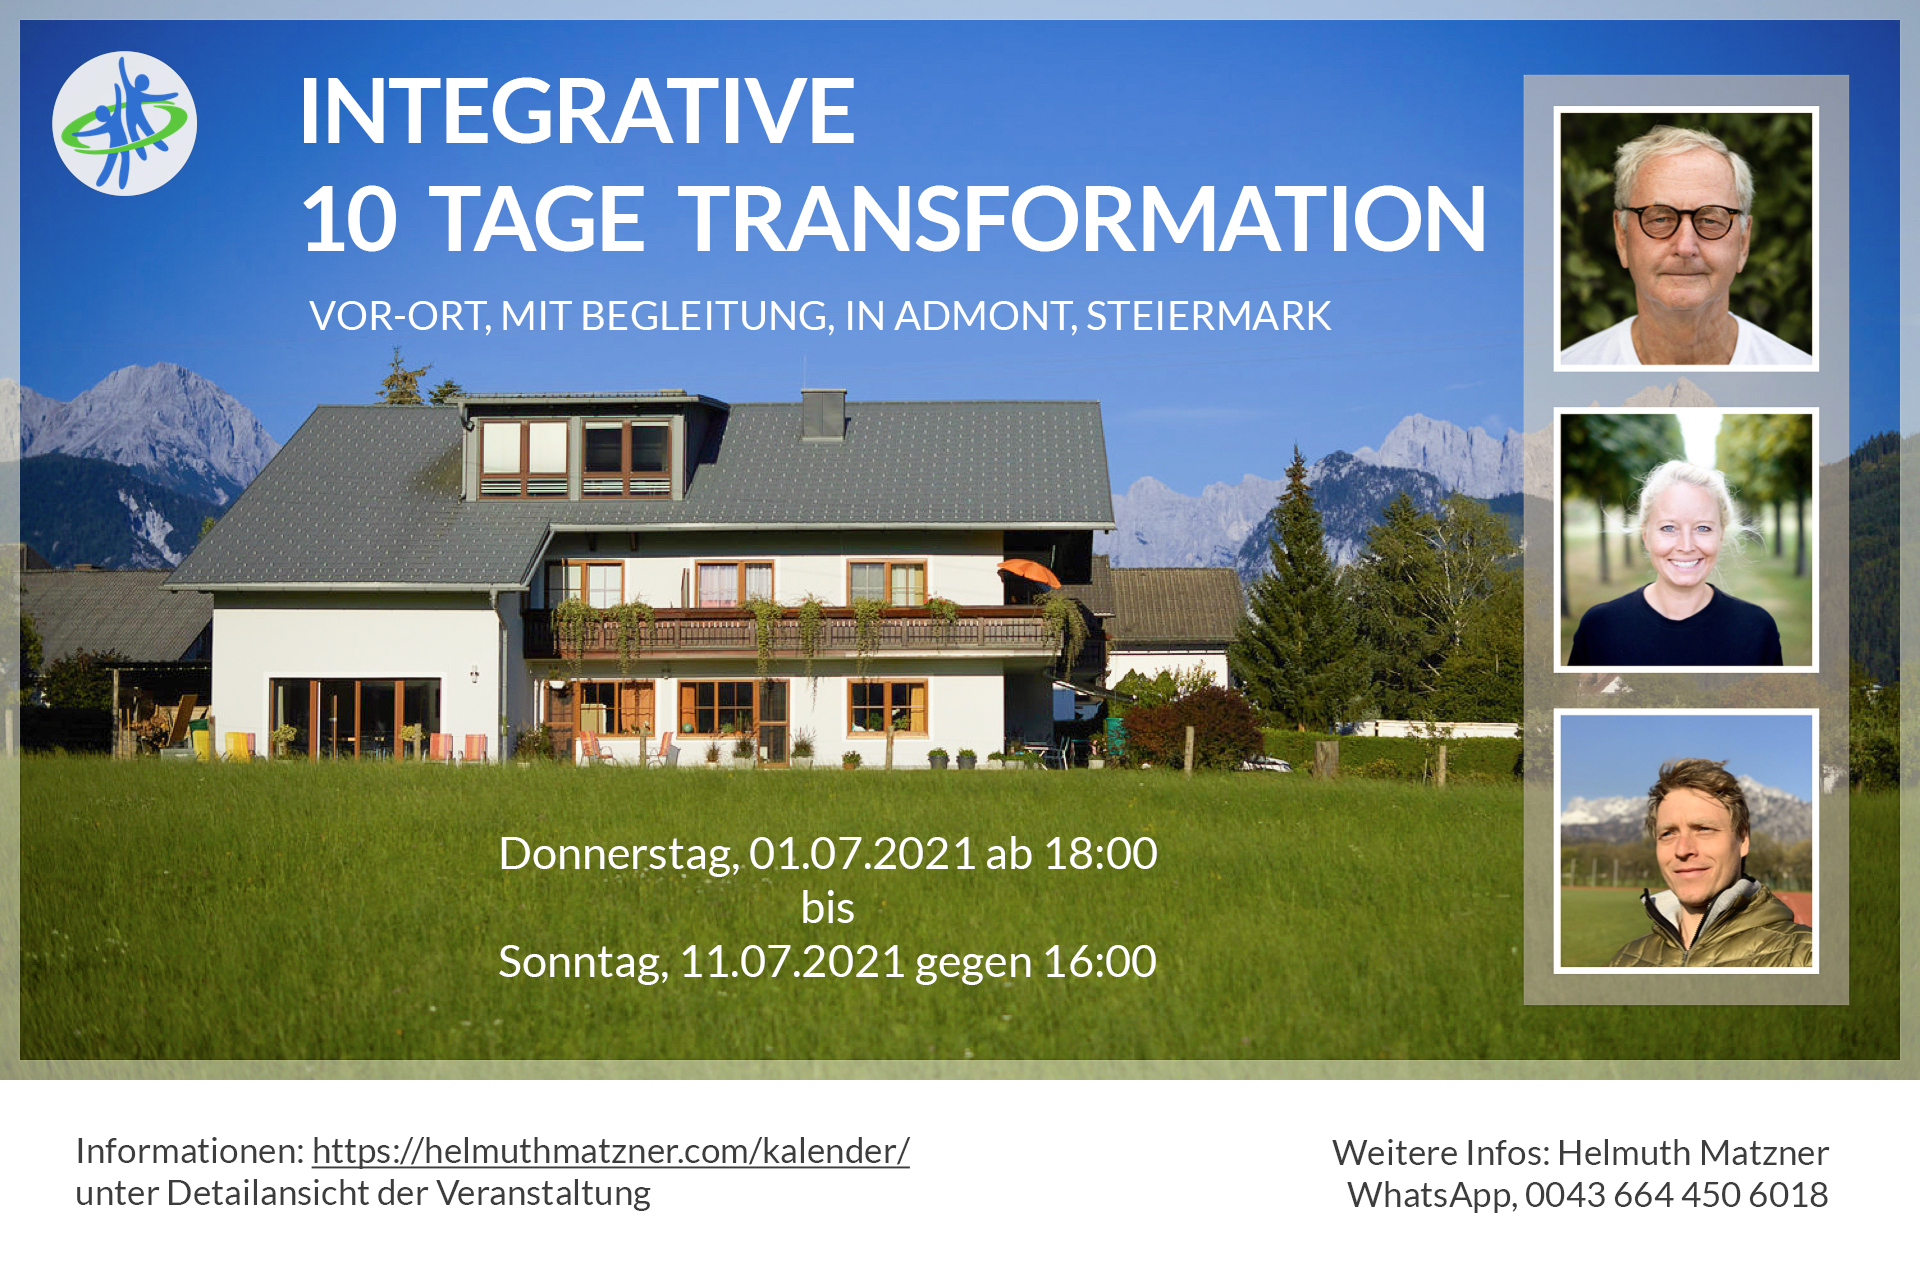 Helmuth Matzner - Integrative 10 Tage Transformation in Admont 2021 - Banner v01_B2